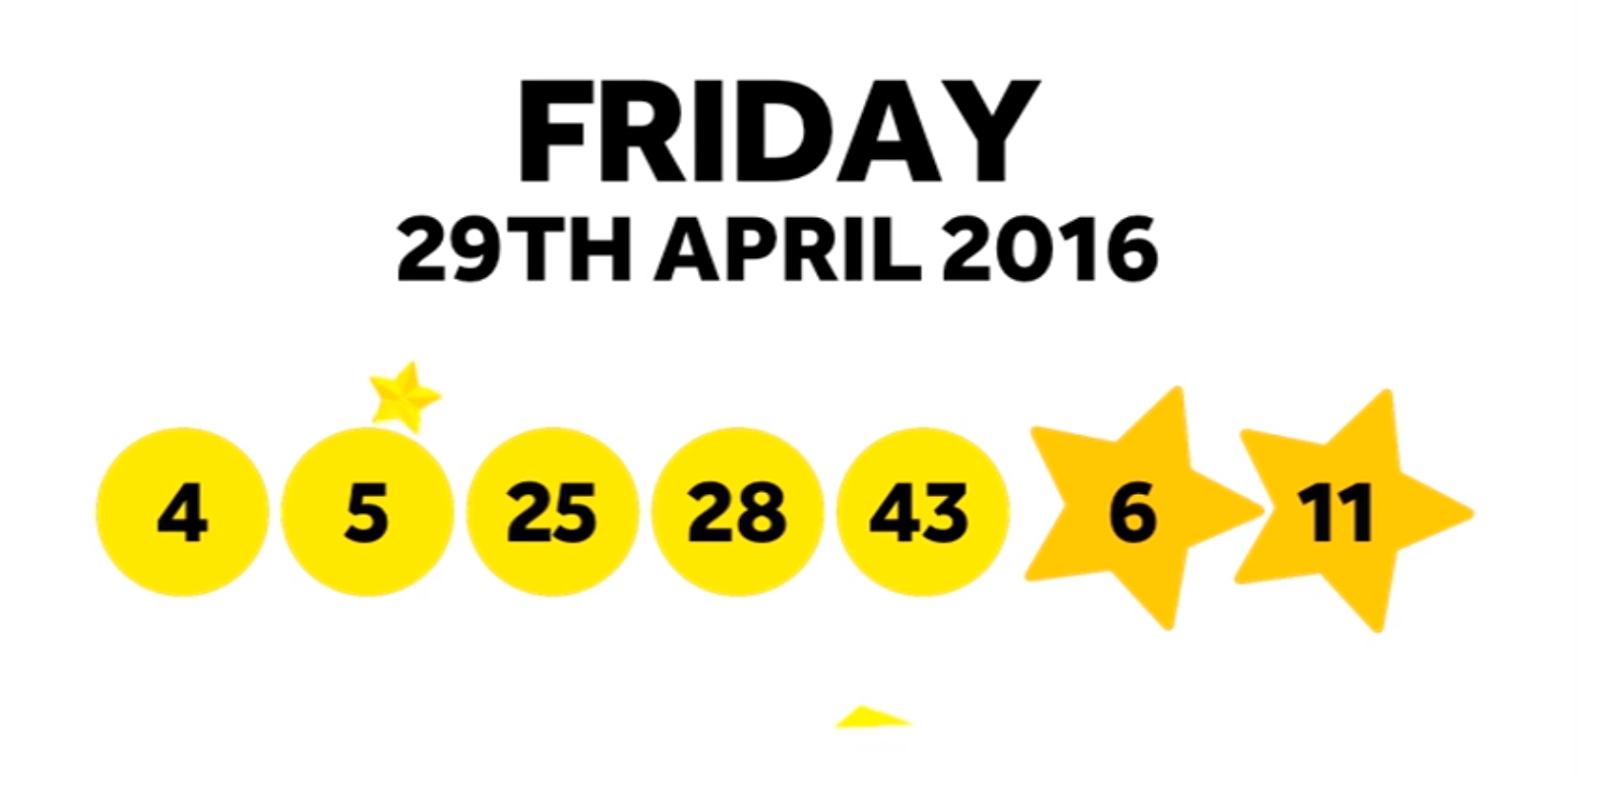 The National Lottery Friday 'EuroMillions' draw results from 29th April 2016